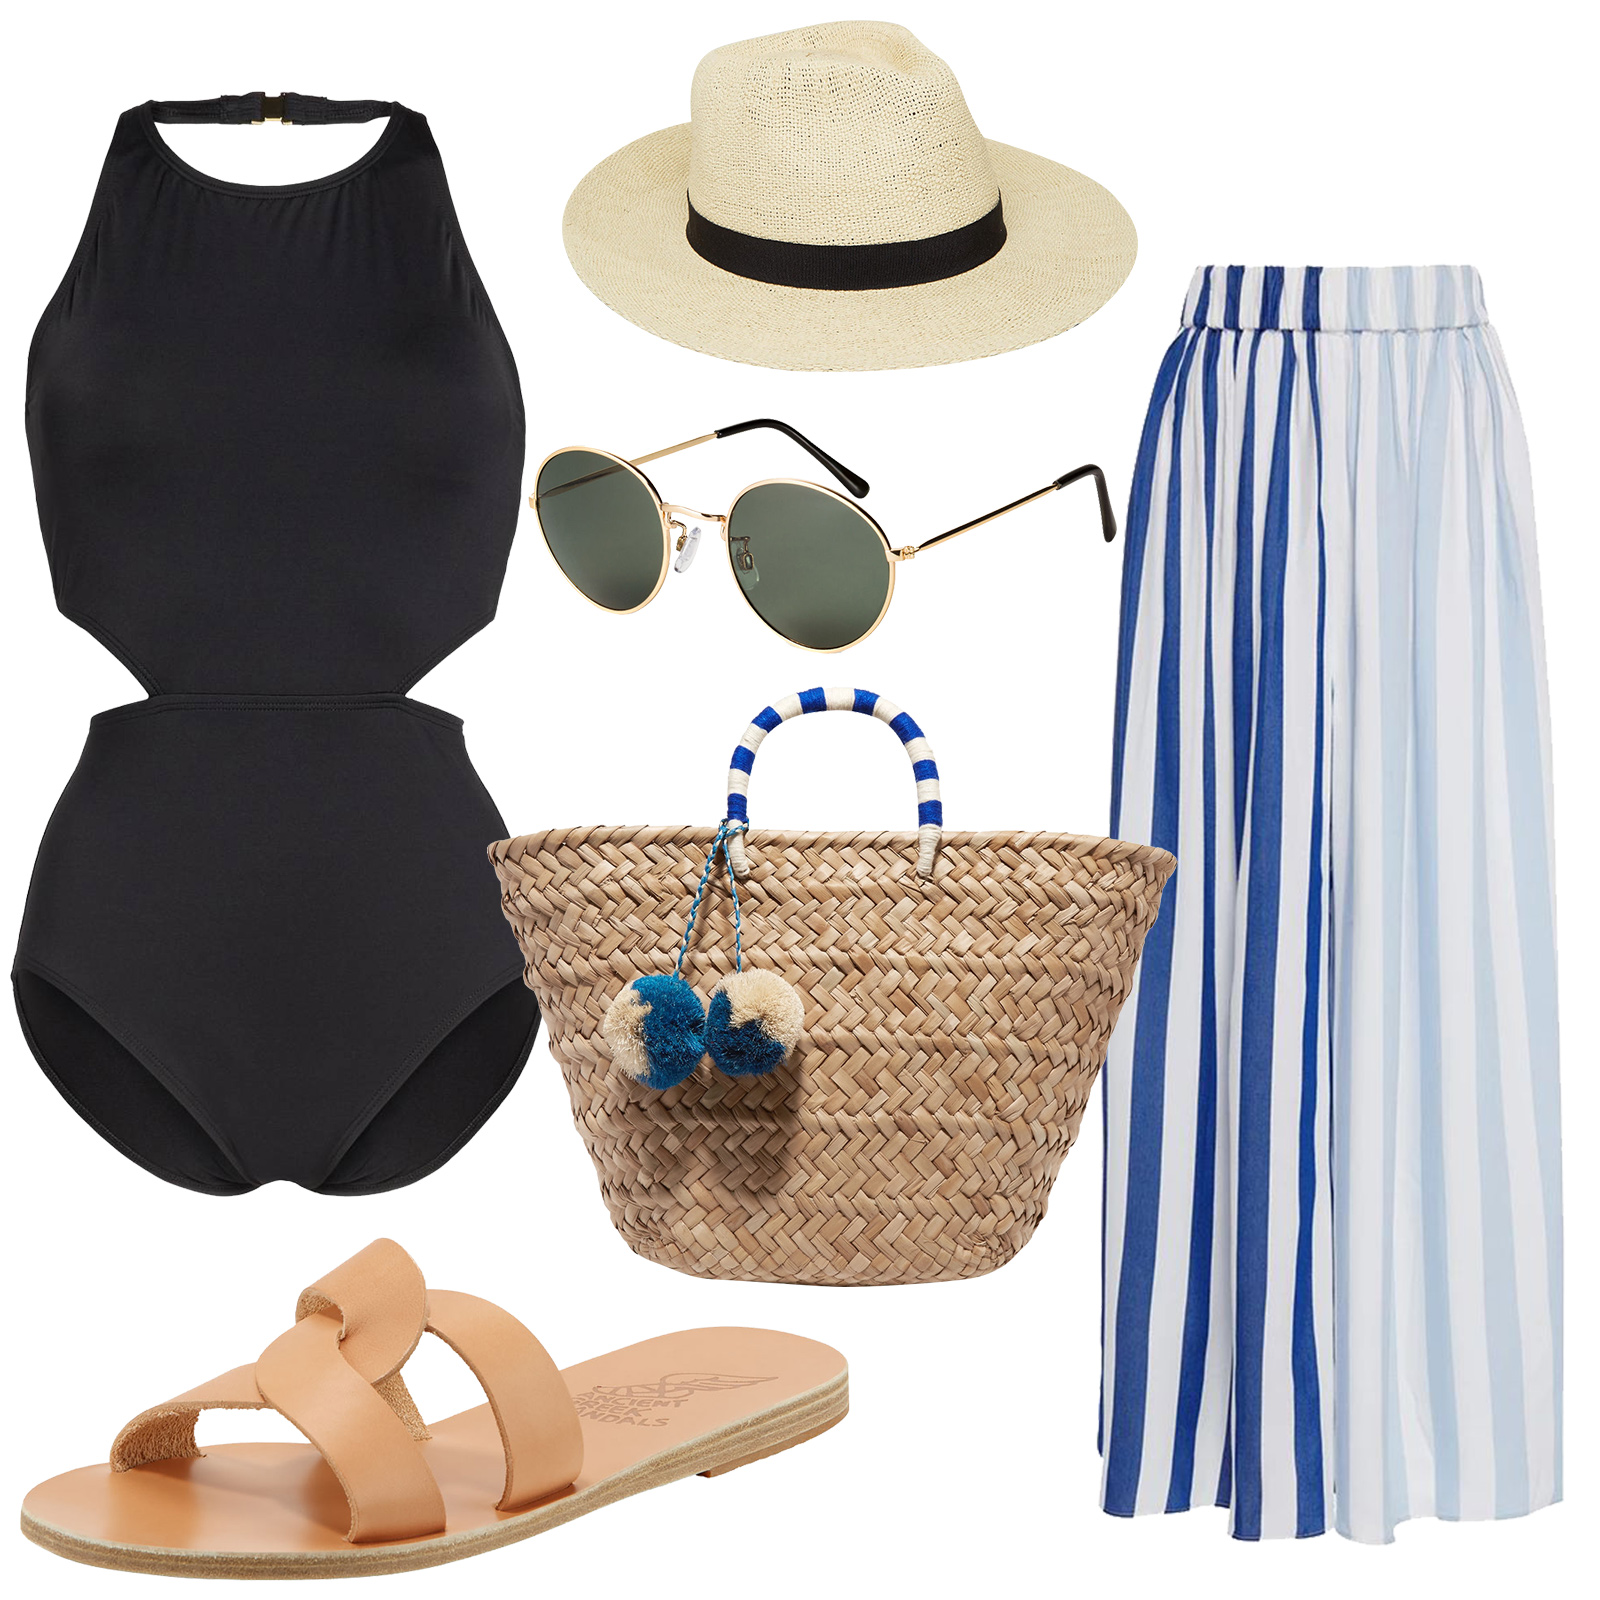 10 Summer Dress to Rock in the Beach. 3